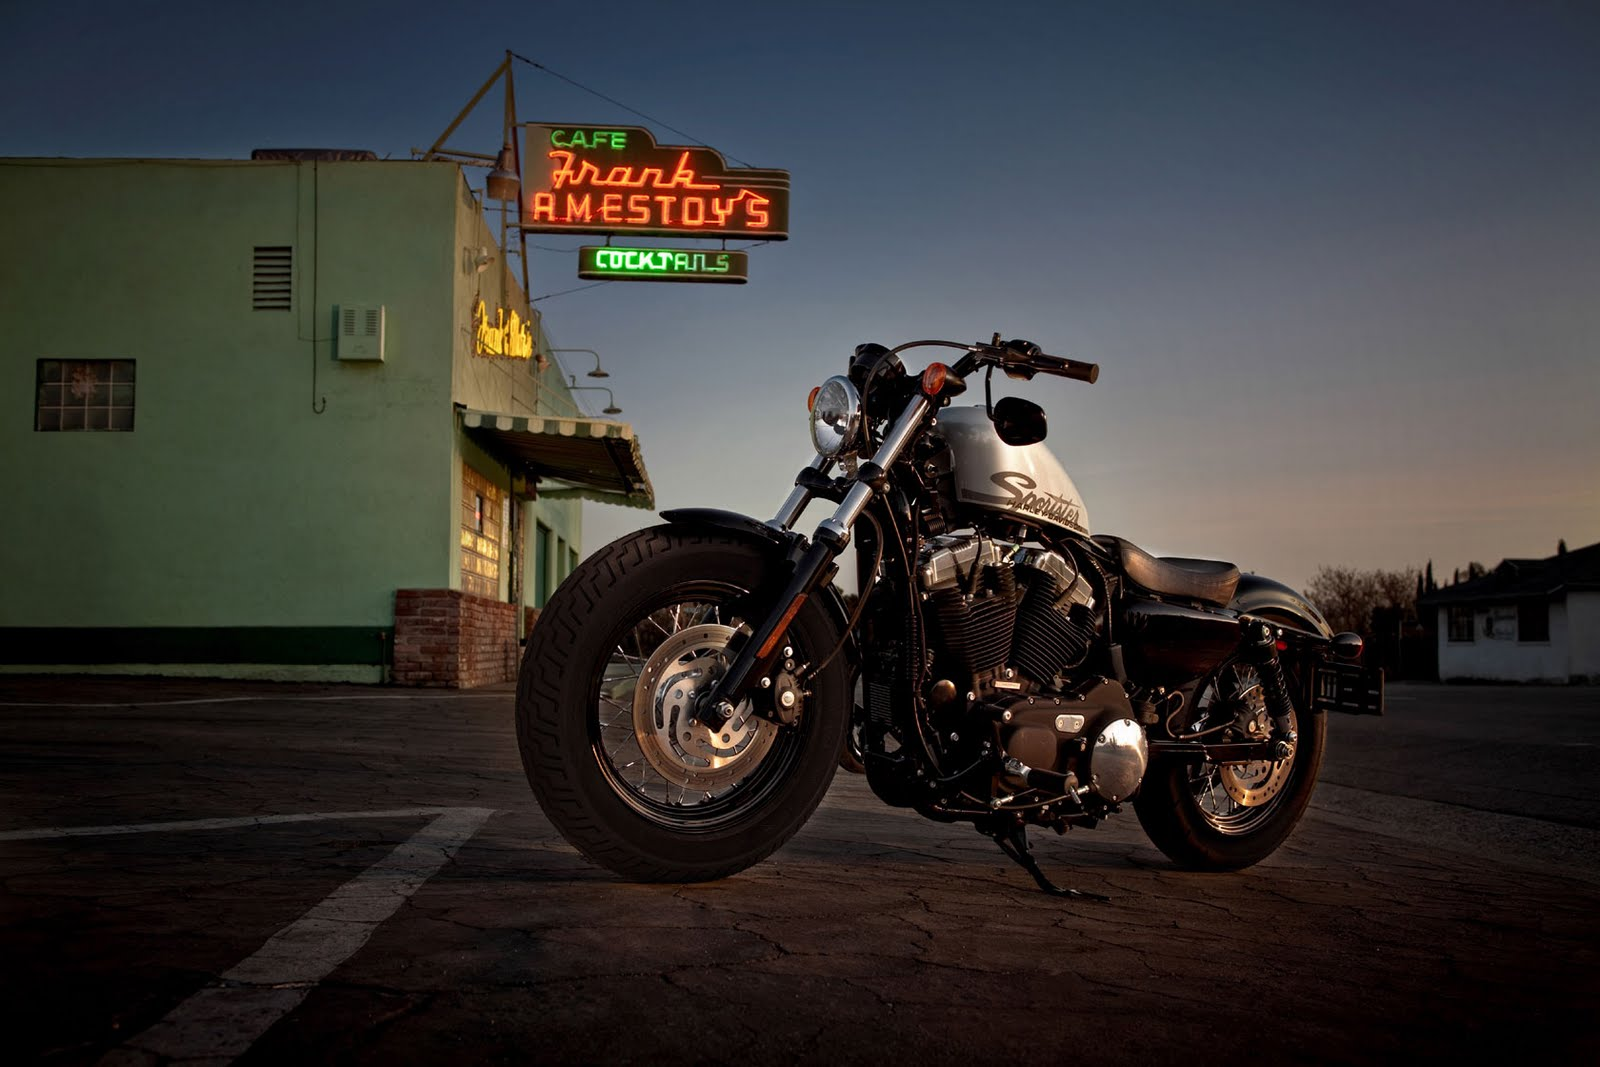 Hd Wallpaper Car And Bike Download Harley Davidson Bikes Hd Wallpapers Free Download Harley